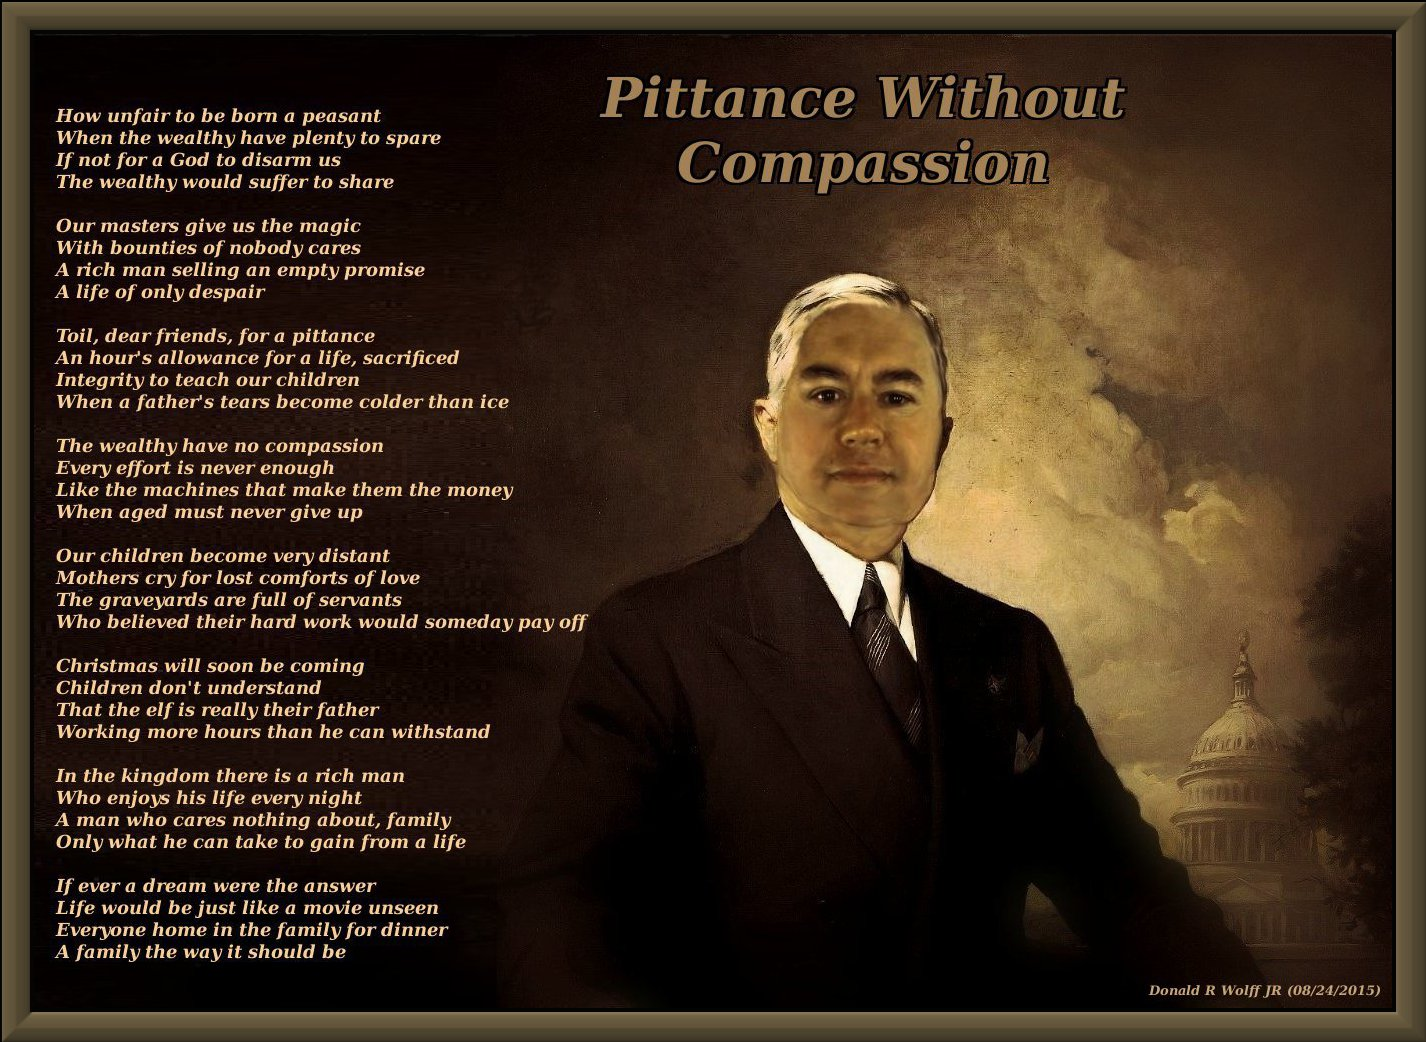 Pittance Without Compassion